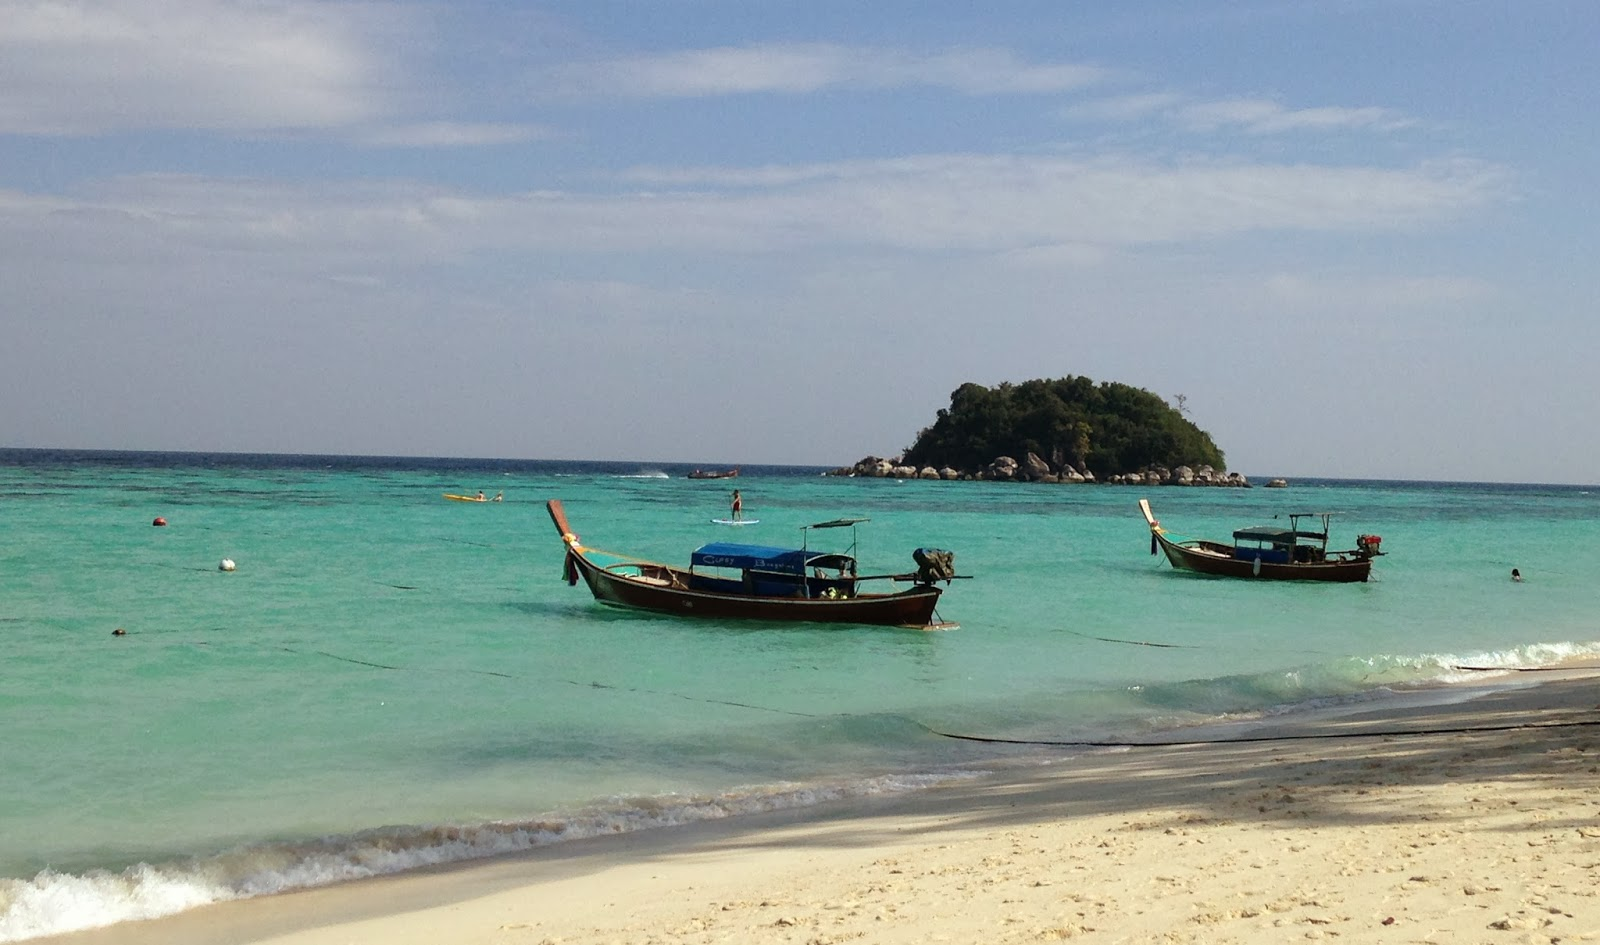 sunrise beach koh lipe